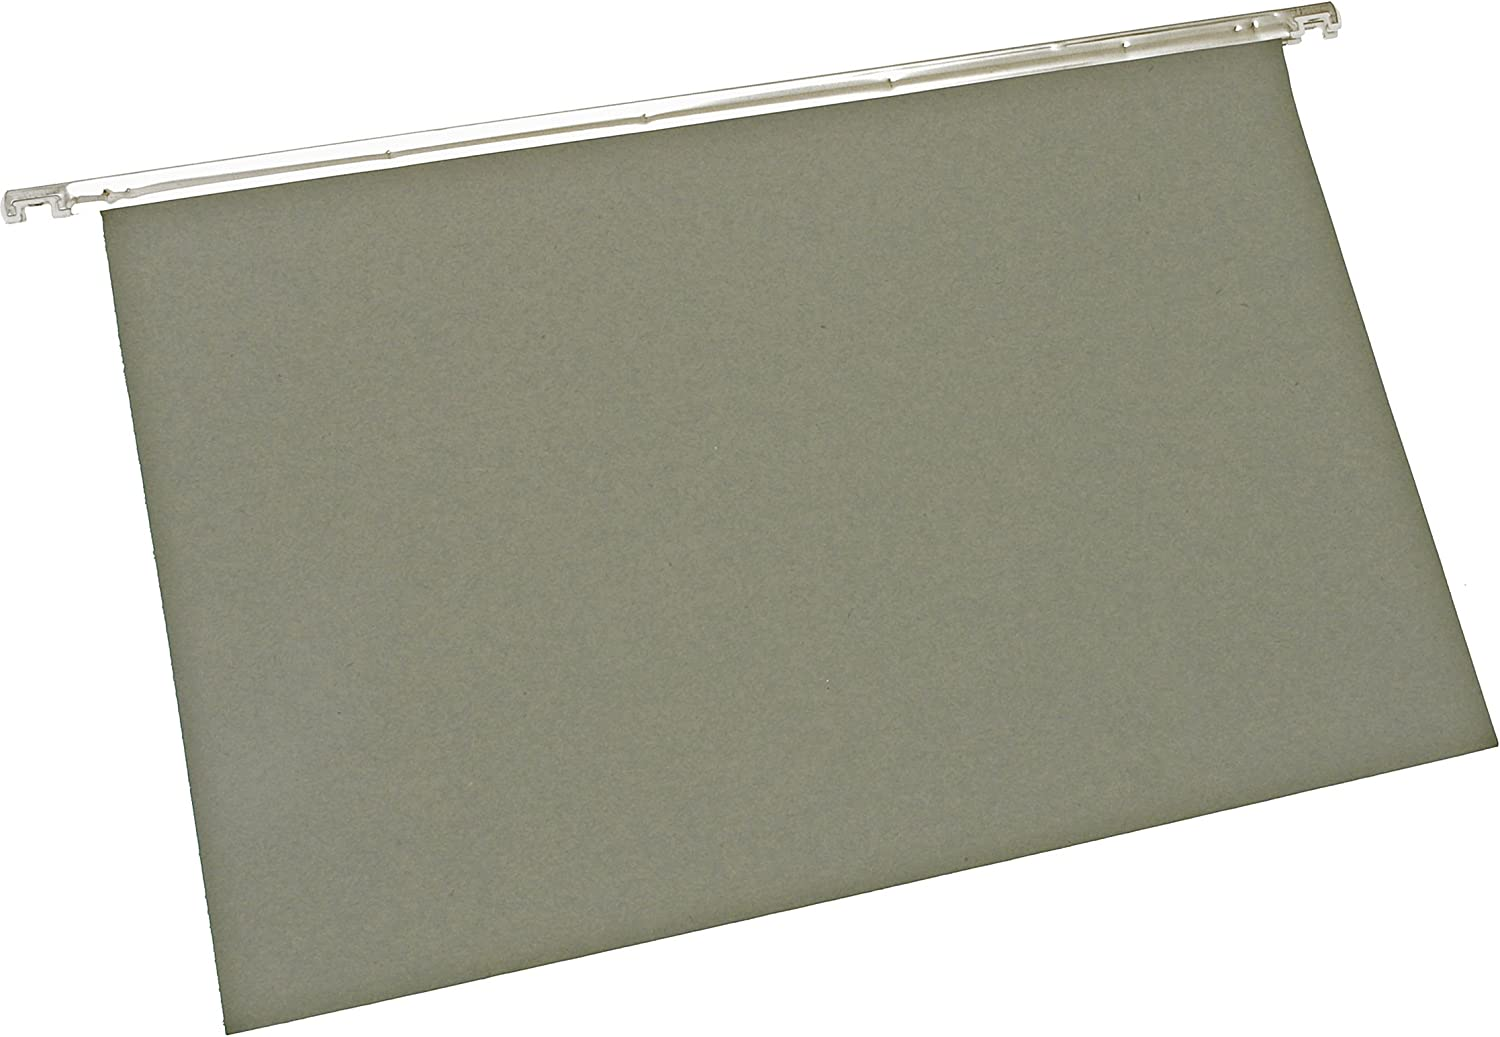 Pack 50 5 Star Office Suspension File Manilla Heavyweight with Tabs and Inserts Foolscap Green